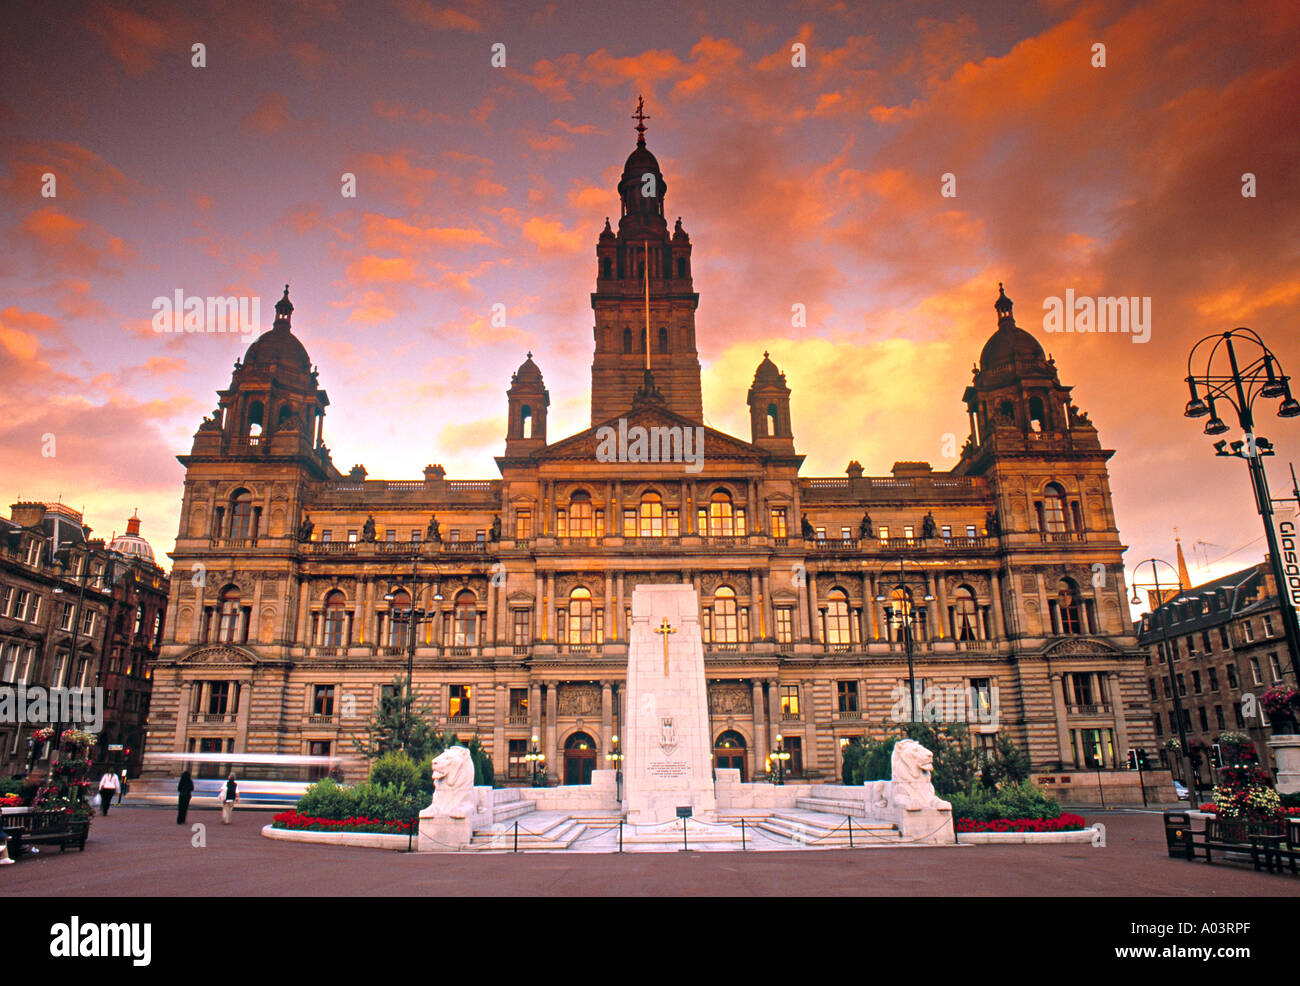 City Chambers, George Sq. Glasgow, Scotland - Stock Image